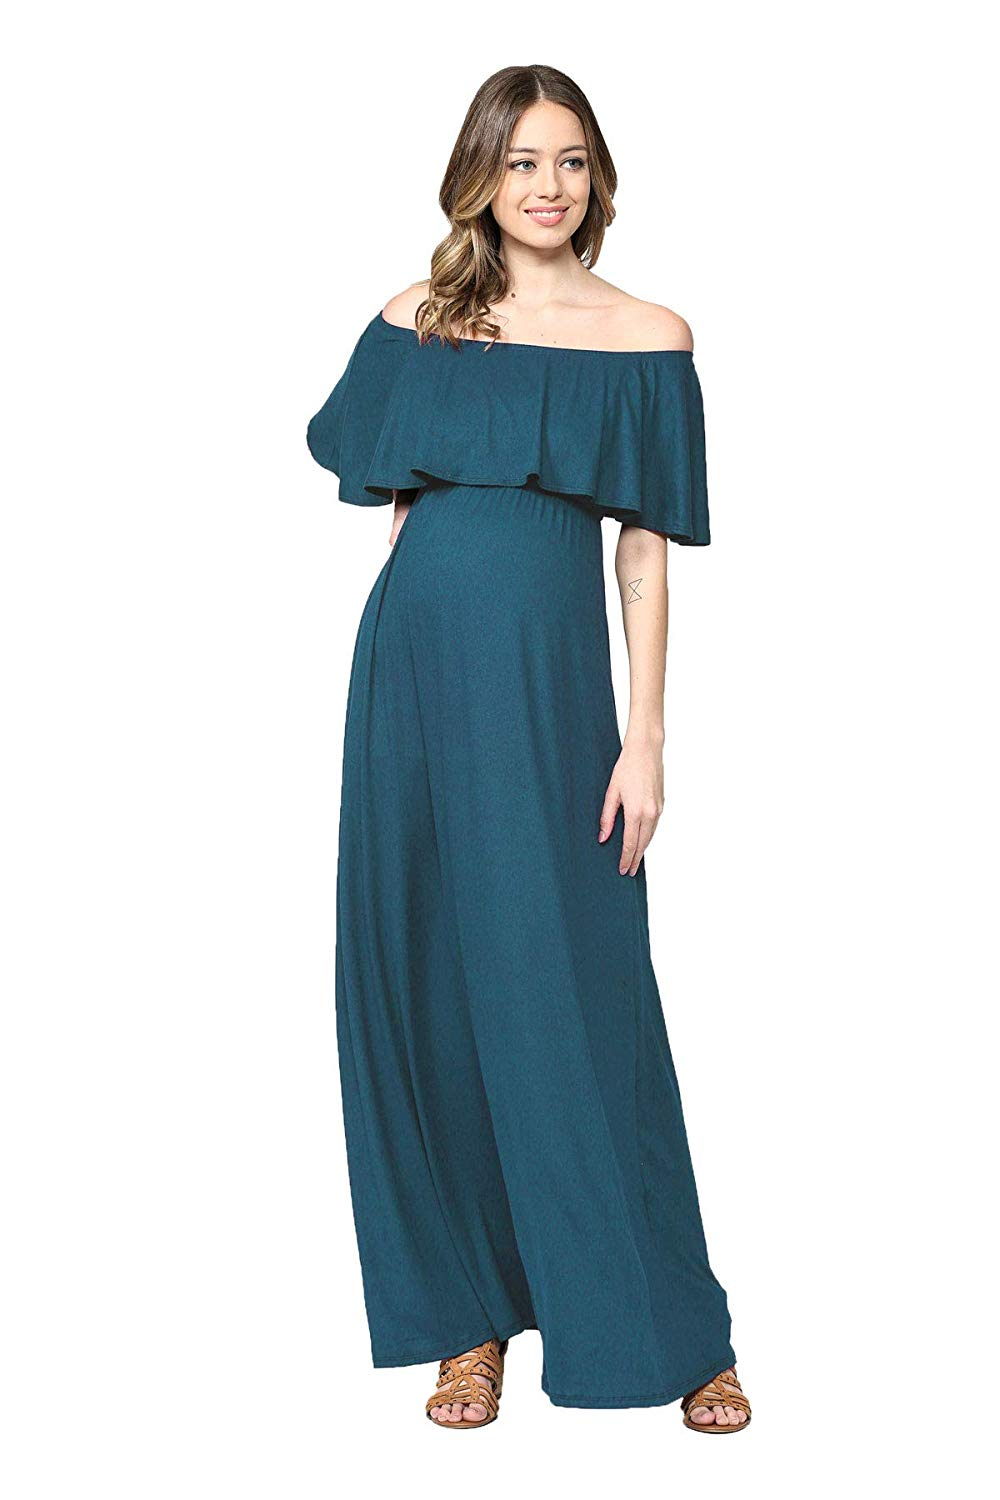 Teal Ruffle Off The Shoulder Maxi Maternity Dress Teal Solid